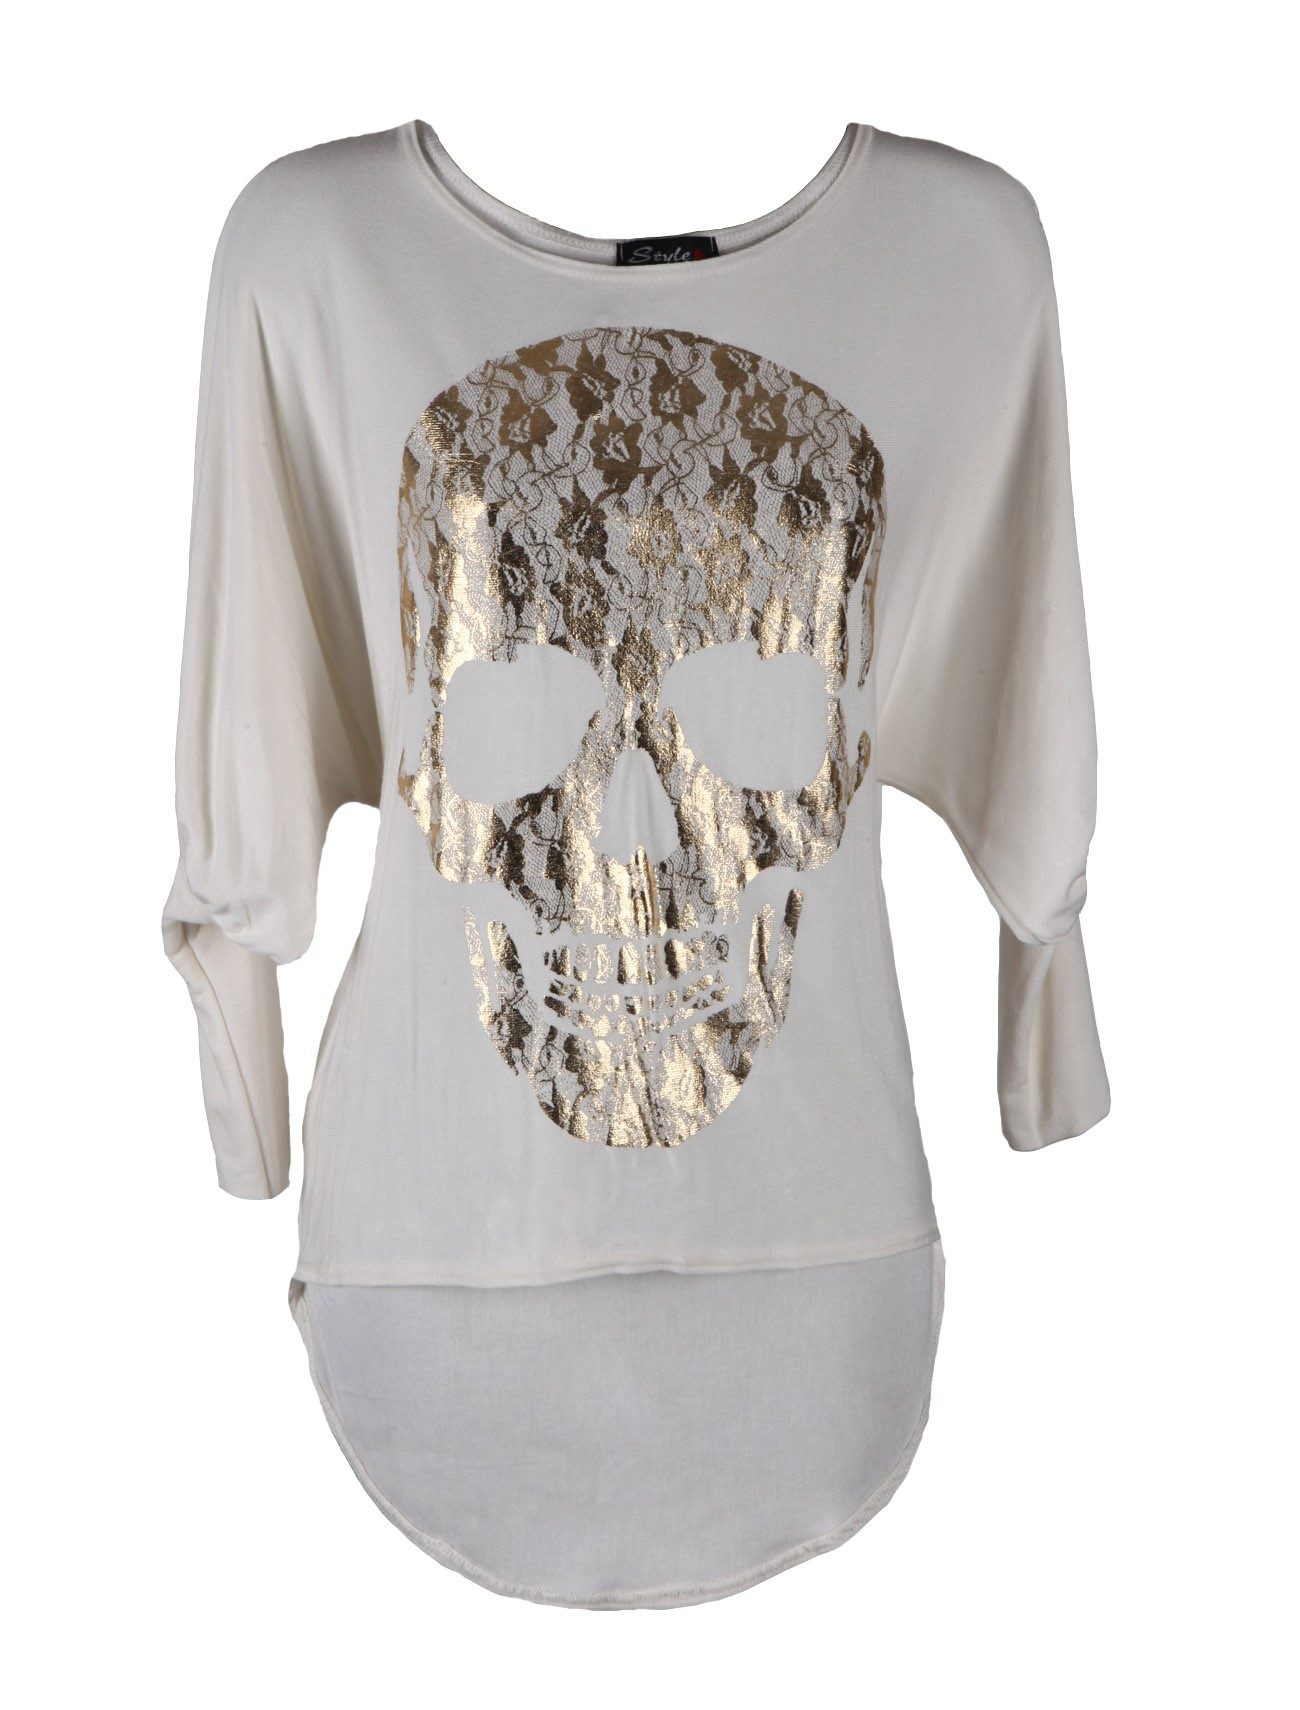 metallic-skull-print-stretchy-batwing-ladies-tops